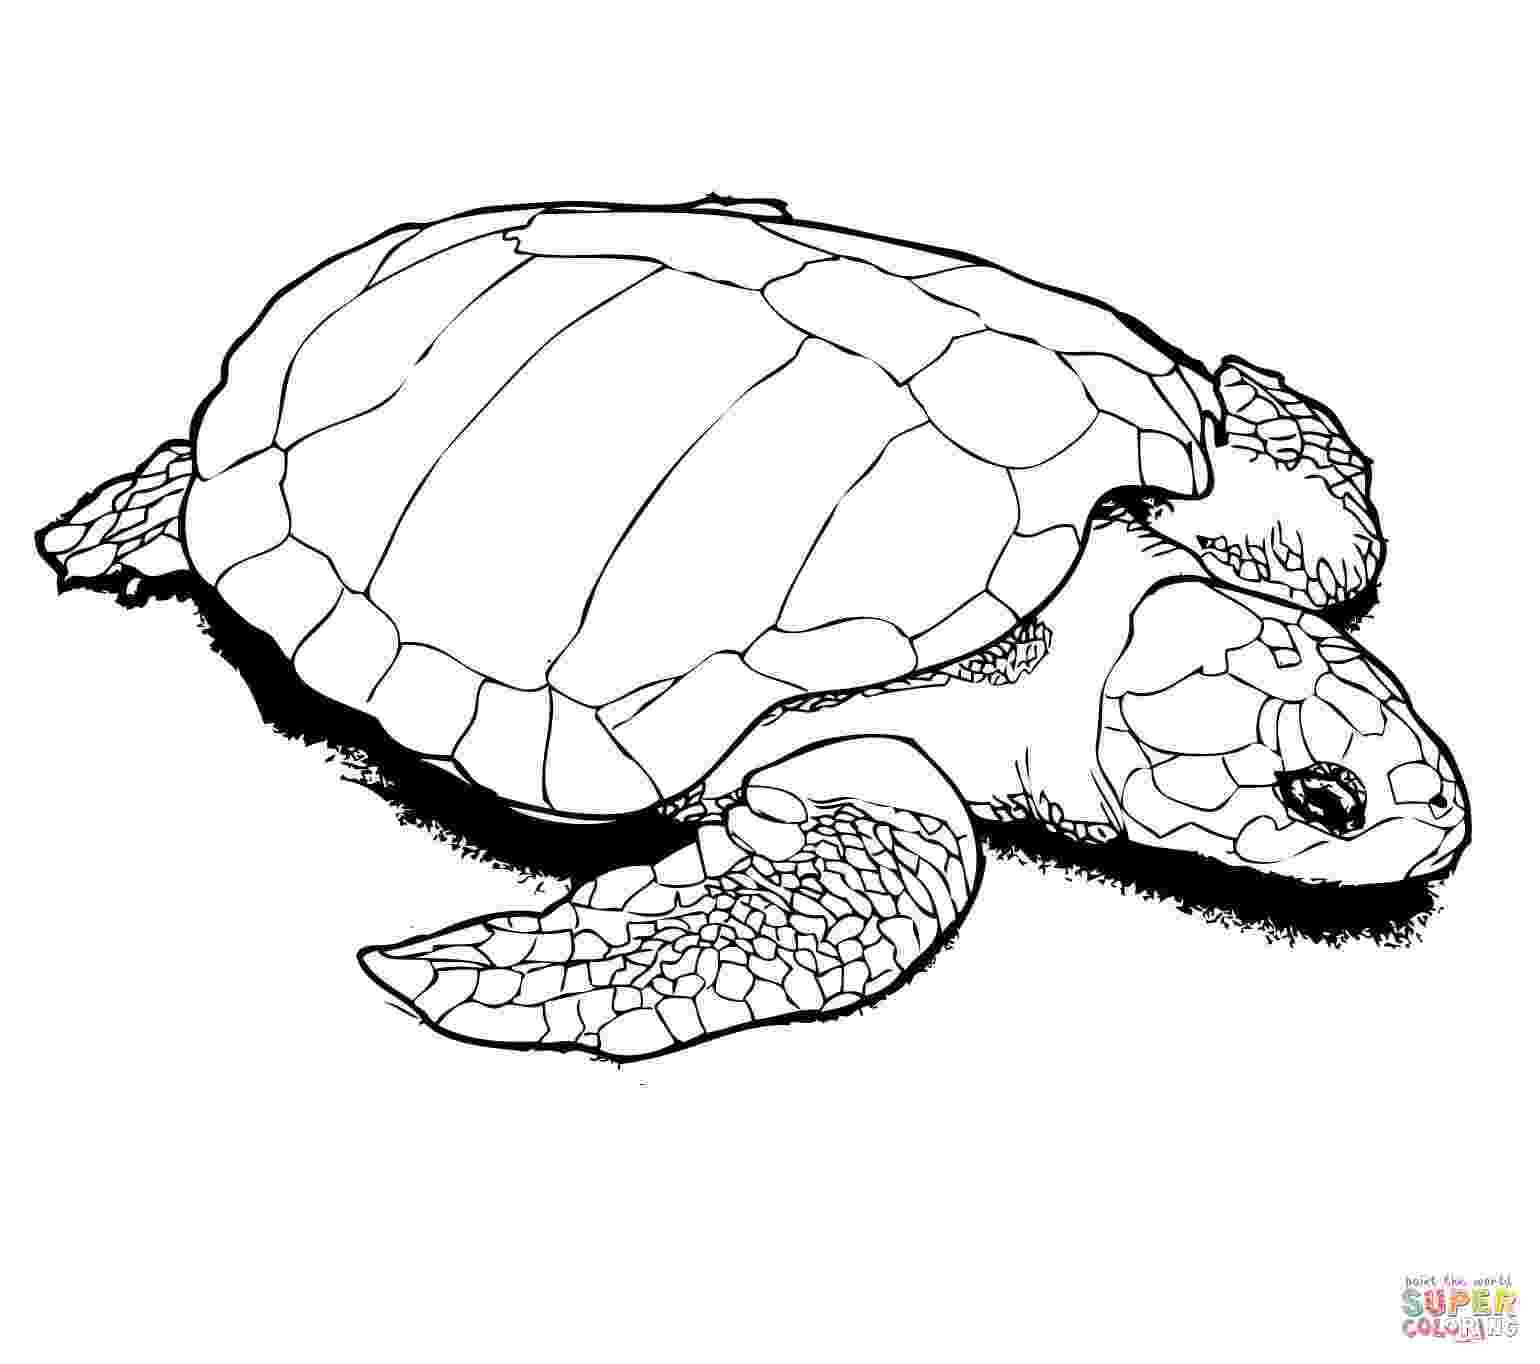 turtle pictures to color turtle coloring pages google search over the rainbow pictures color turtle to